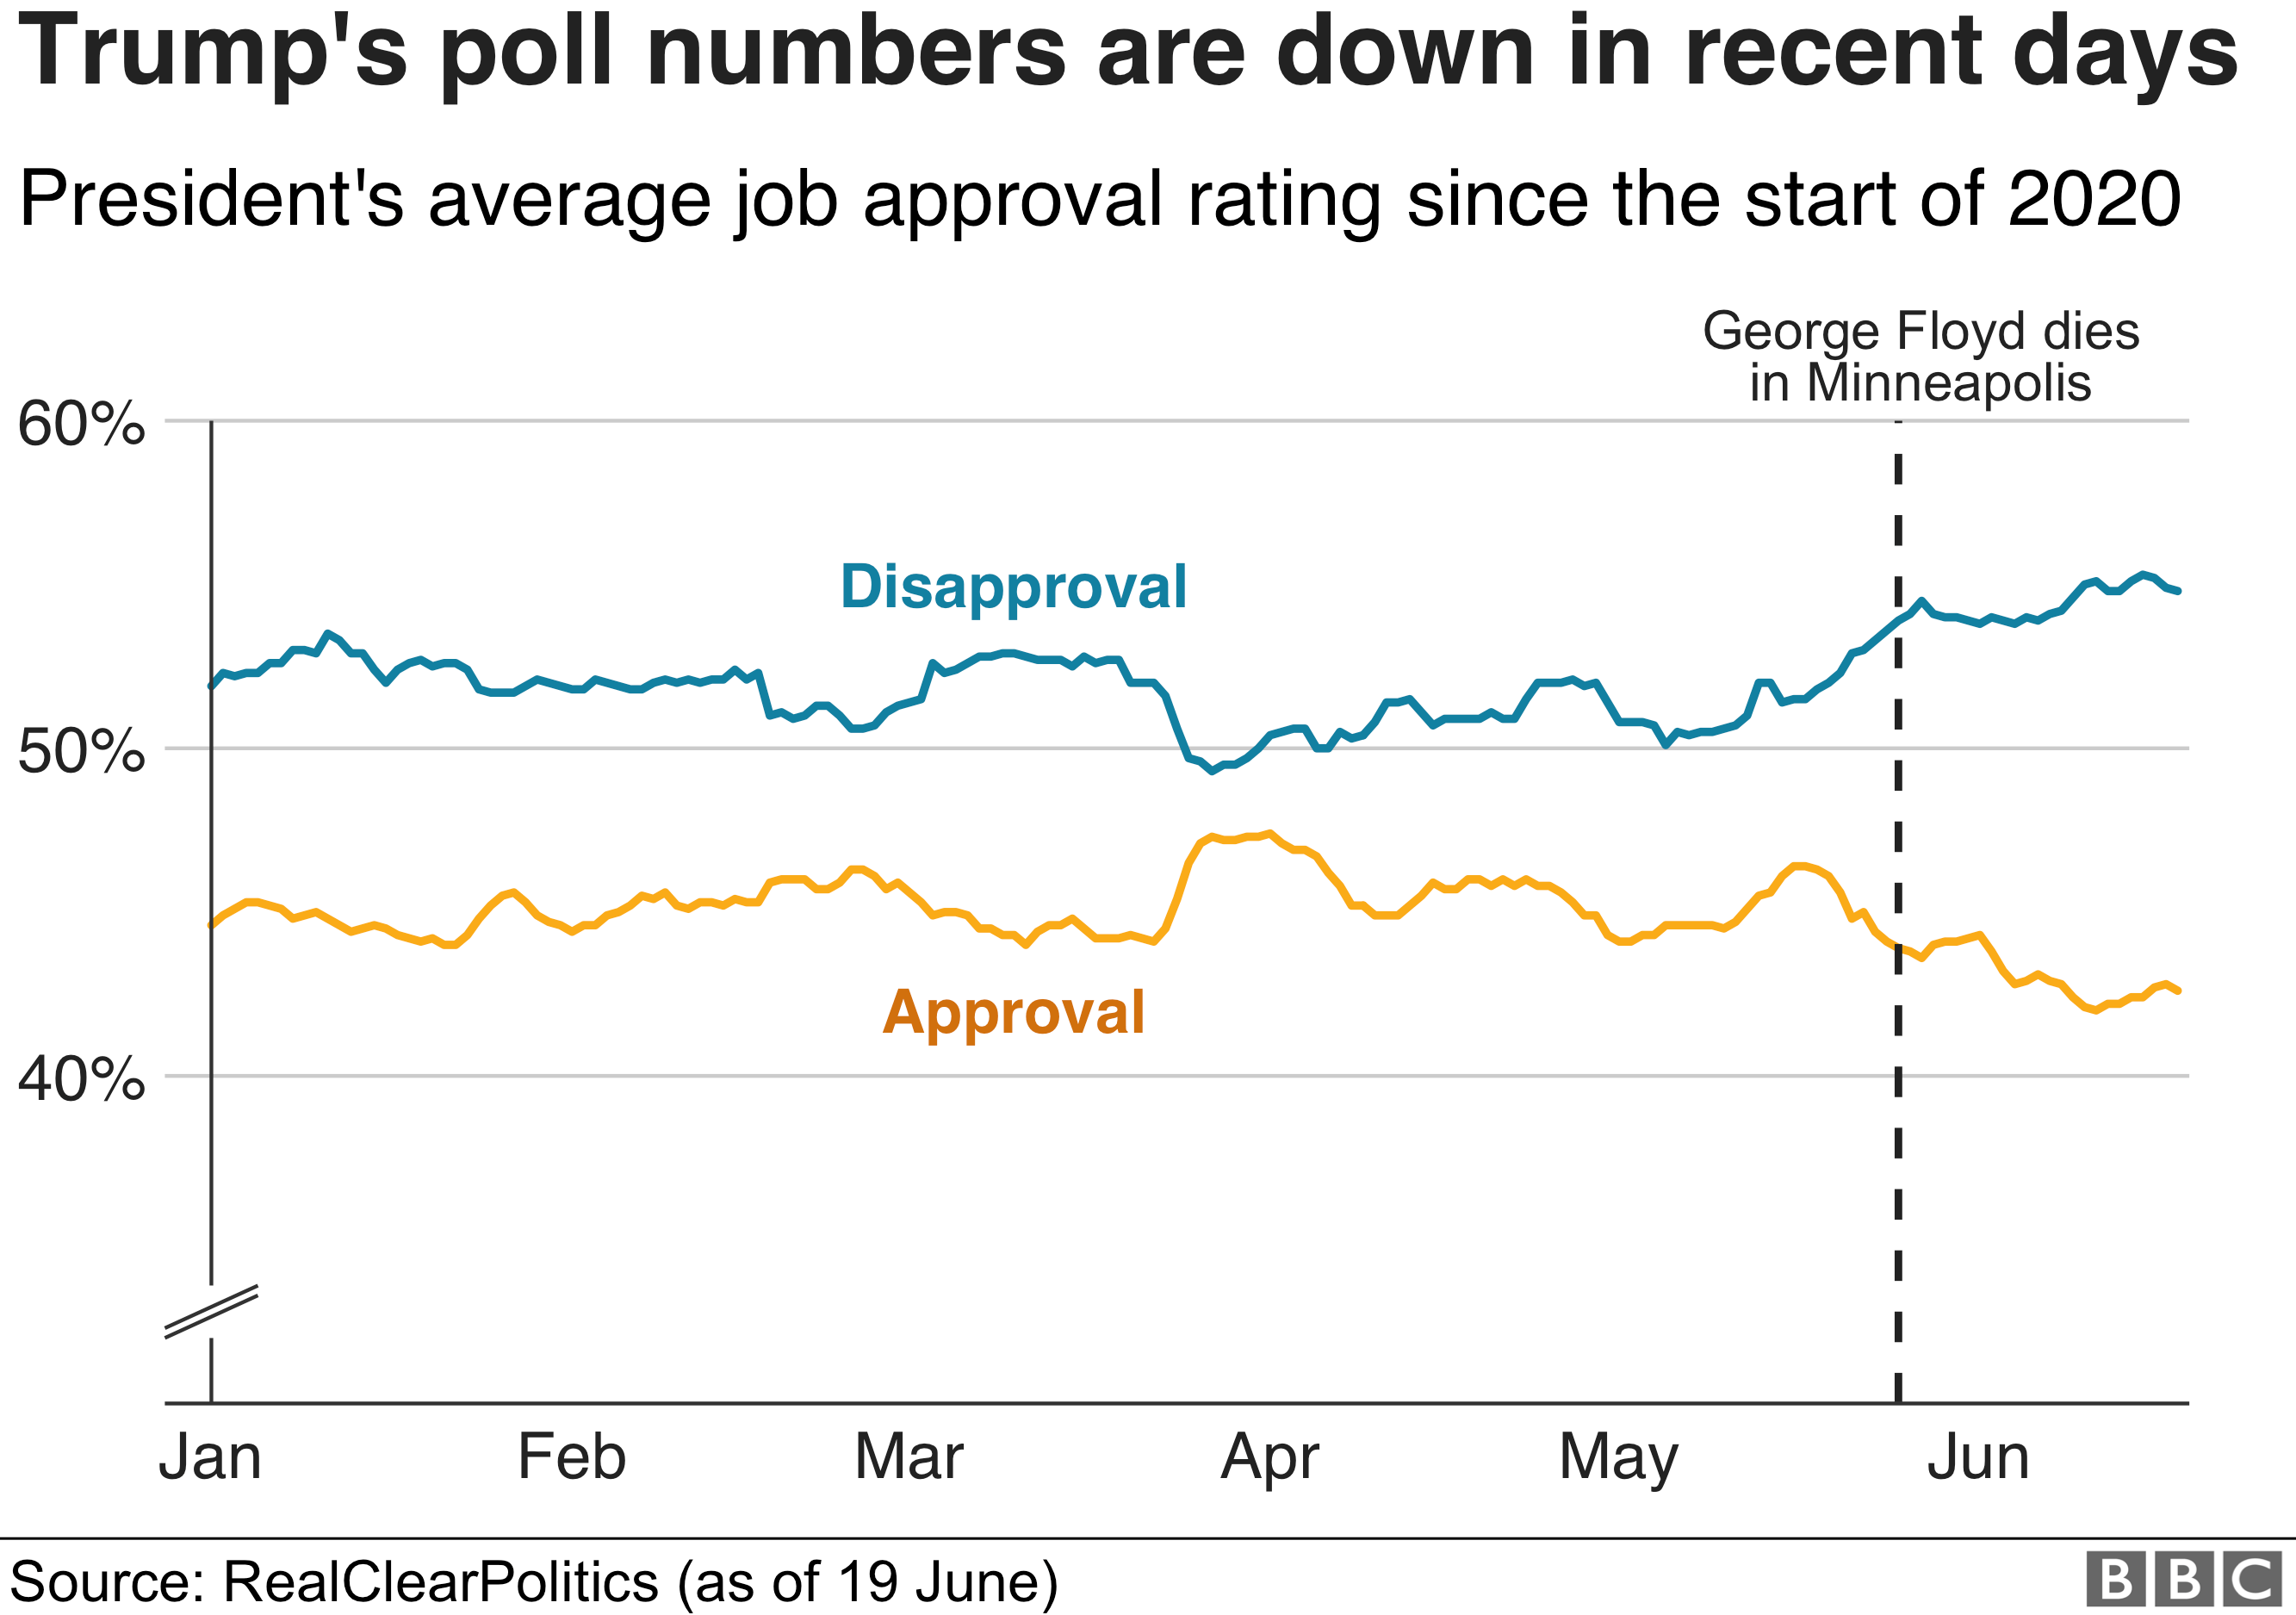 Chart showing Donald Trump's job approval rating since the beginning of 2020